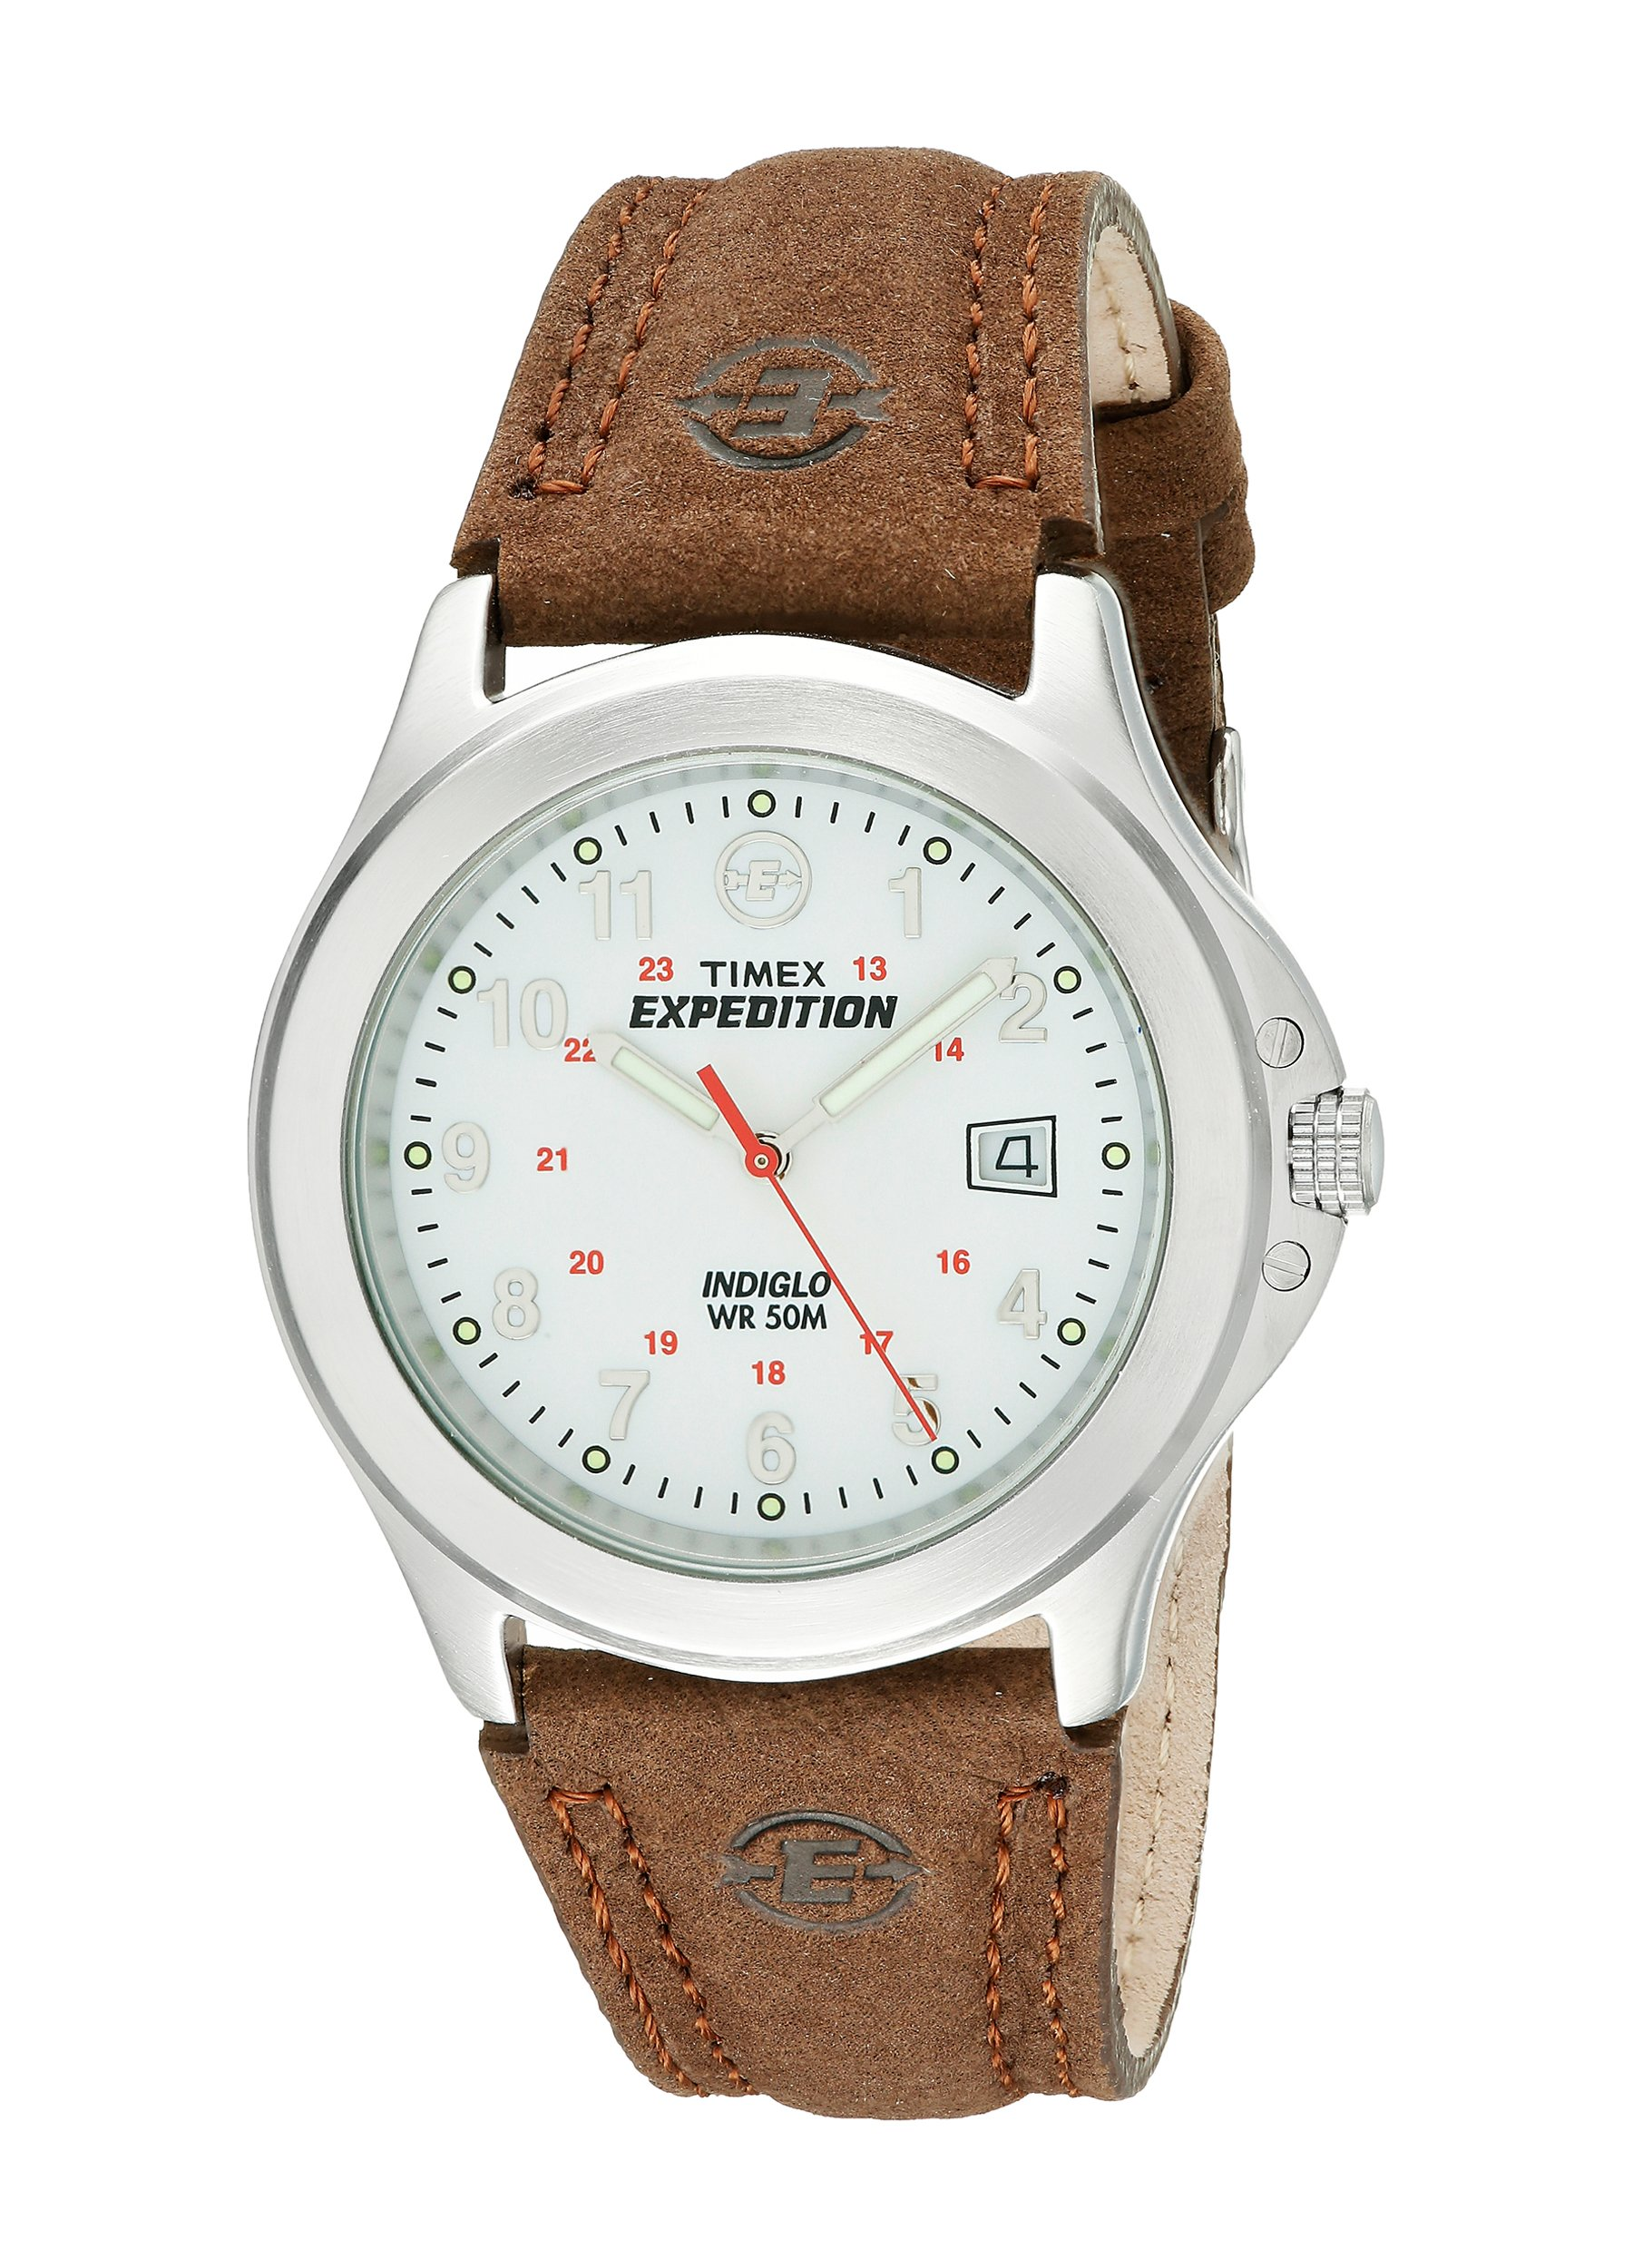 photo com watches watch pm elliot dec watchreport review tyneham brown